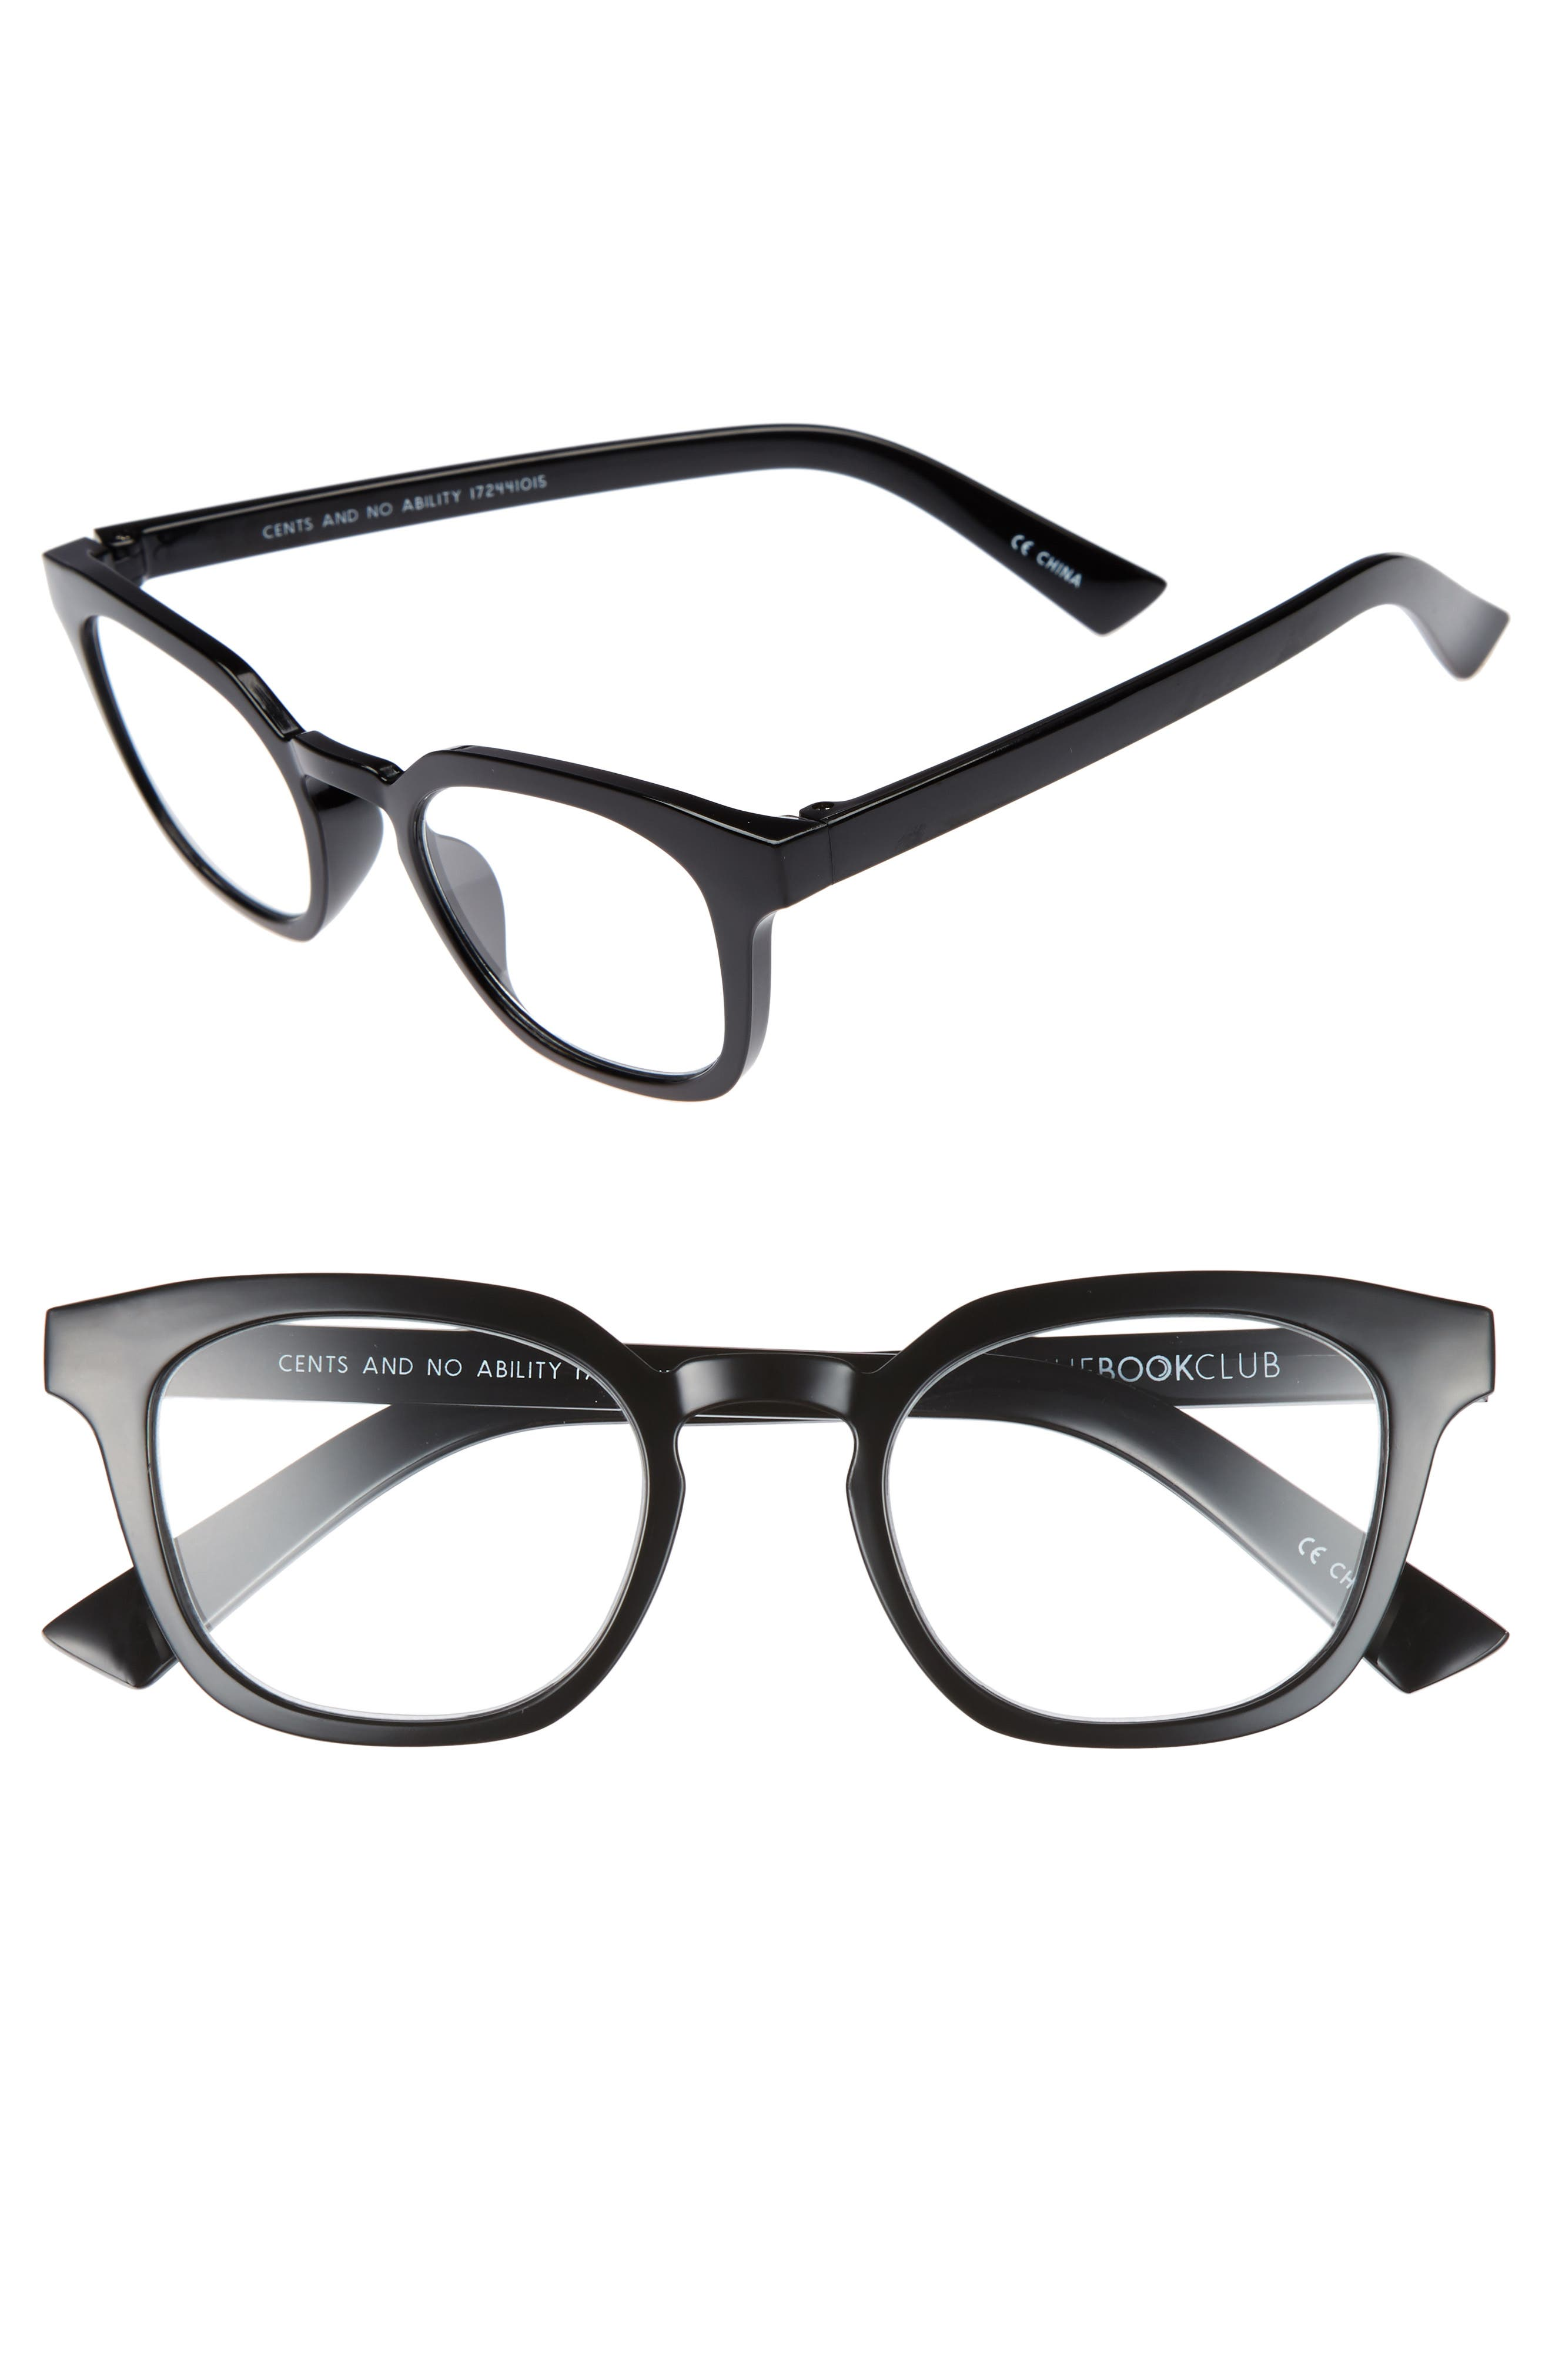 Cents and No Ability 48mm Reading Glasses,                             Main thumbnail 1, color,                             Black Marker